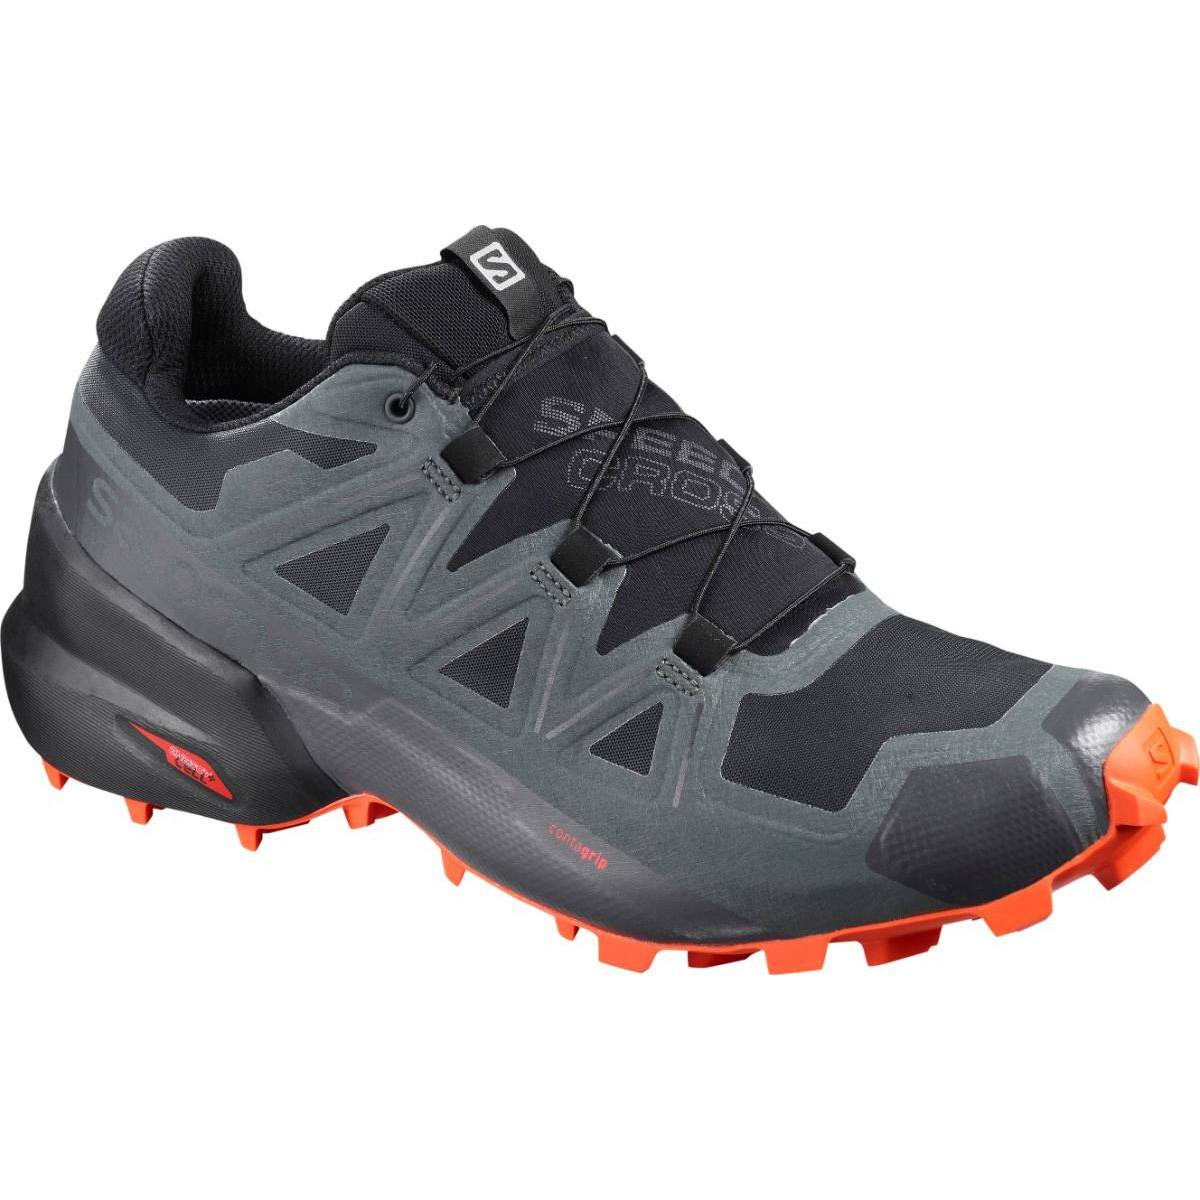 Salomon Pantofi alergare Salomon SPEEDCROSS 5 GTX - Gri